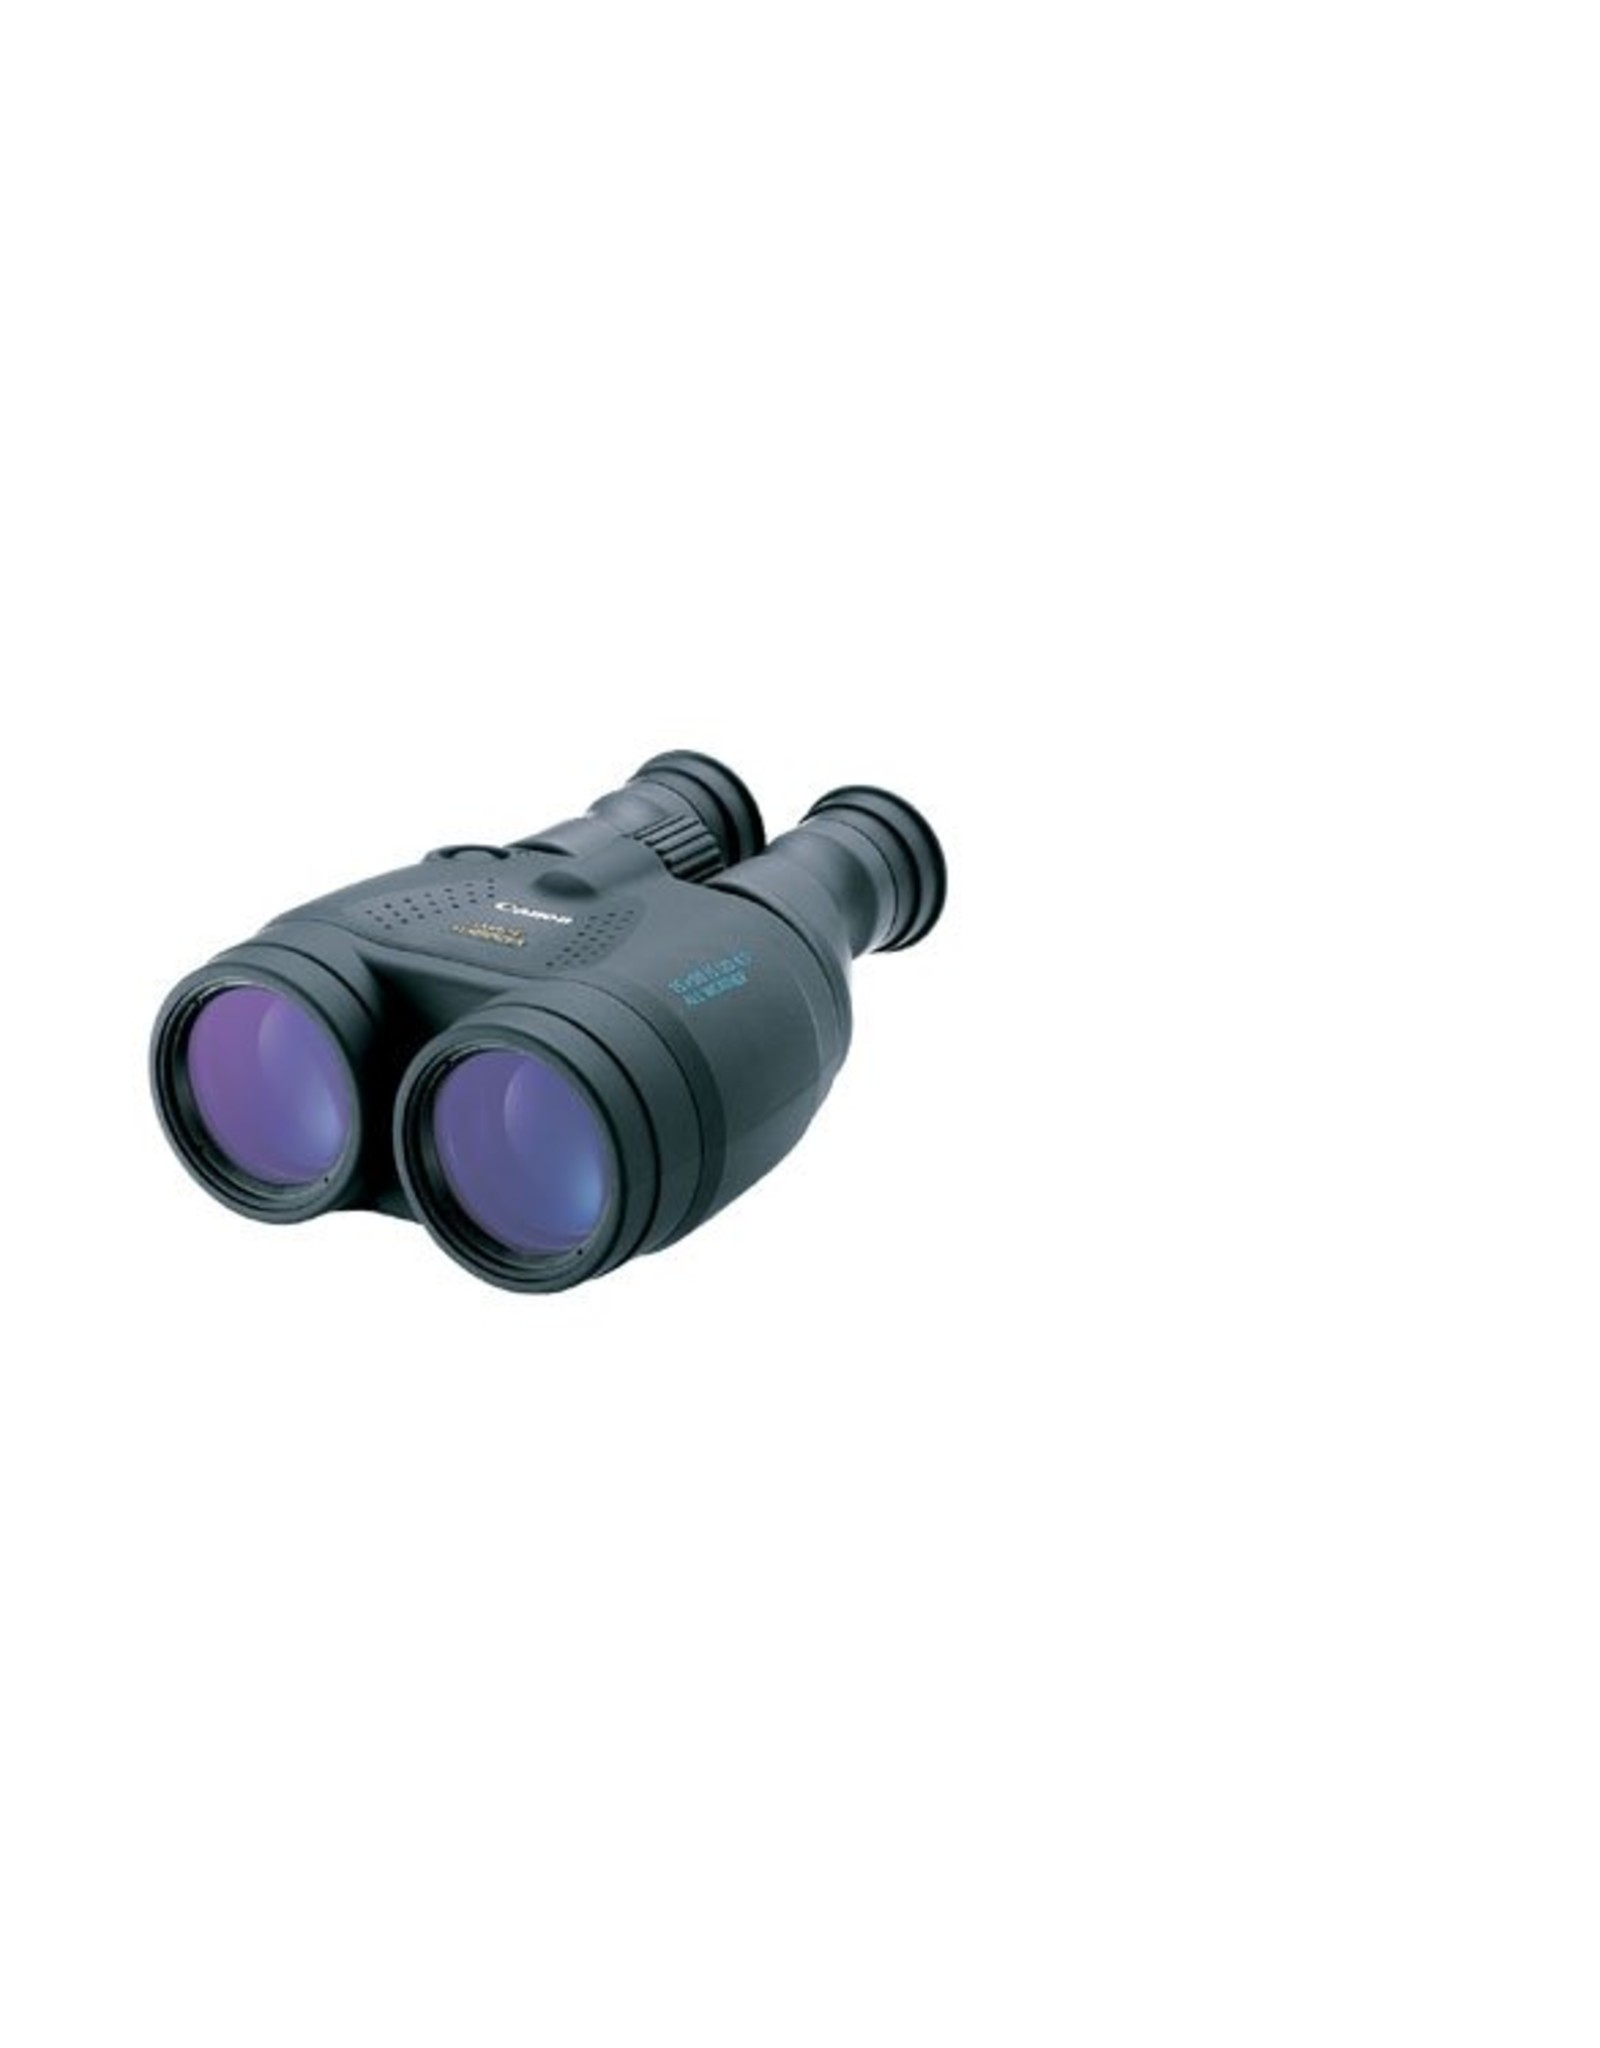 Canon Canon 15 X 50 IS AW Image Stabilized Binoculars